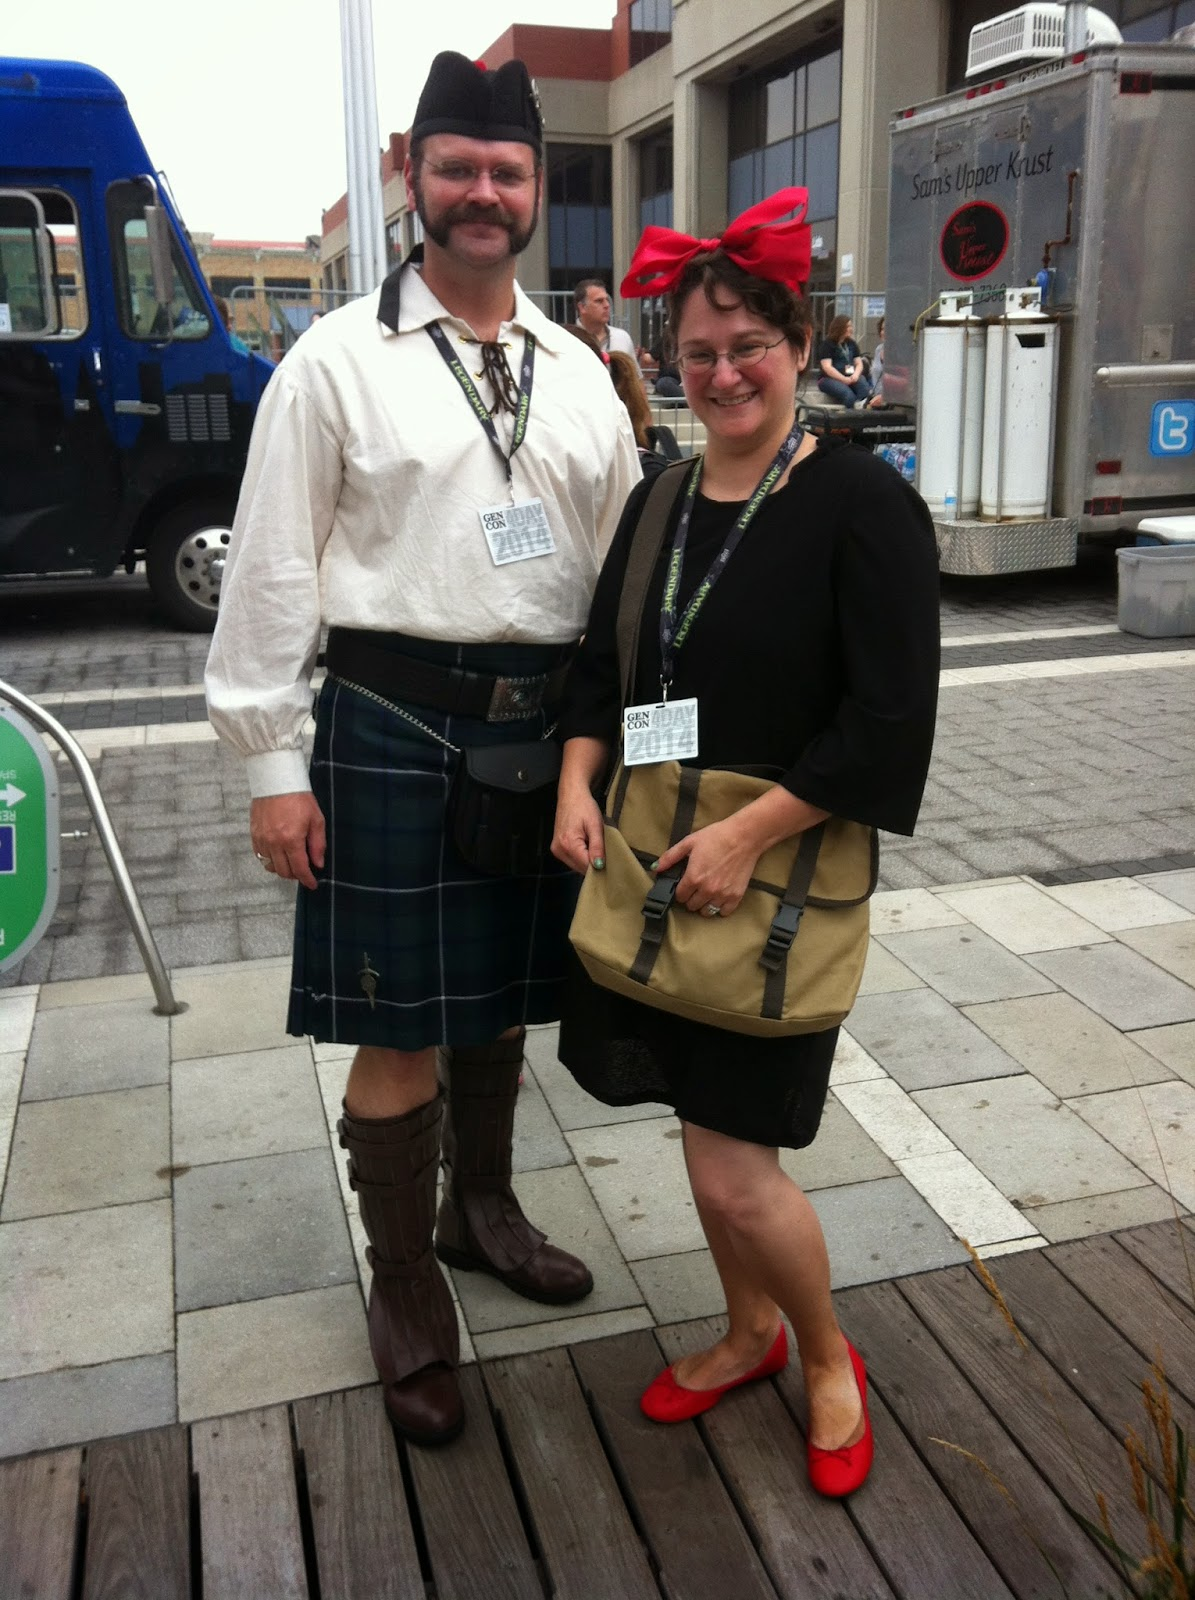 Chris in his kilt, dressed as a Scot, and me as Kiki from Kiki's Delivery Service